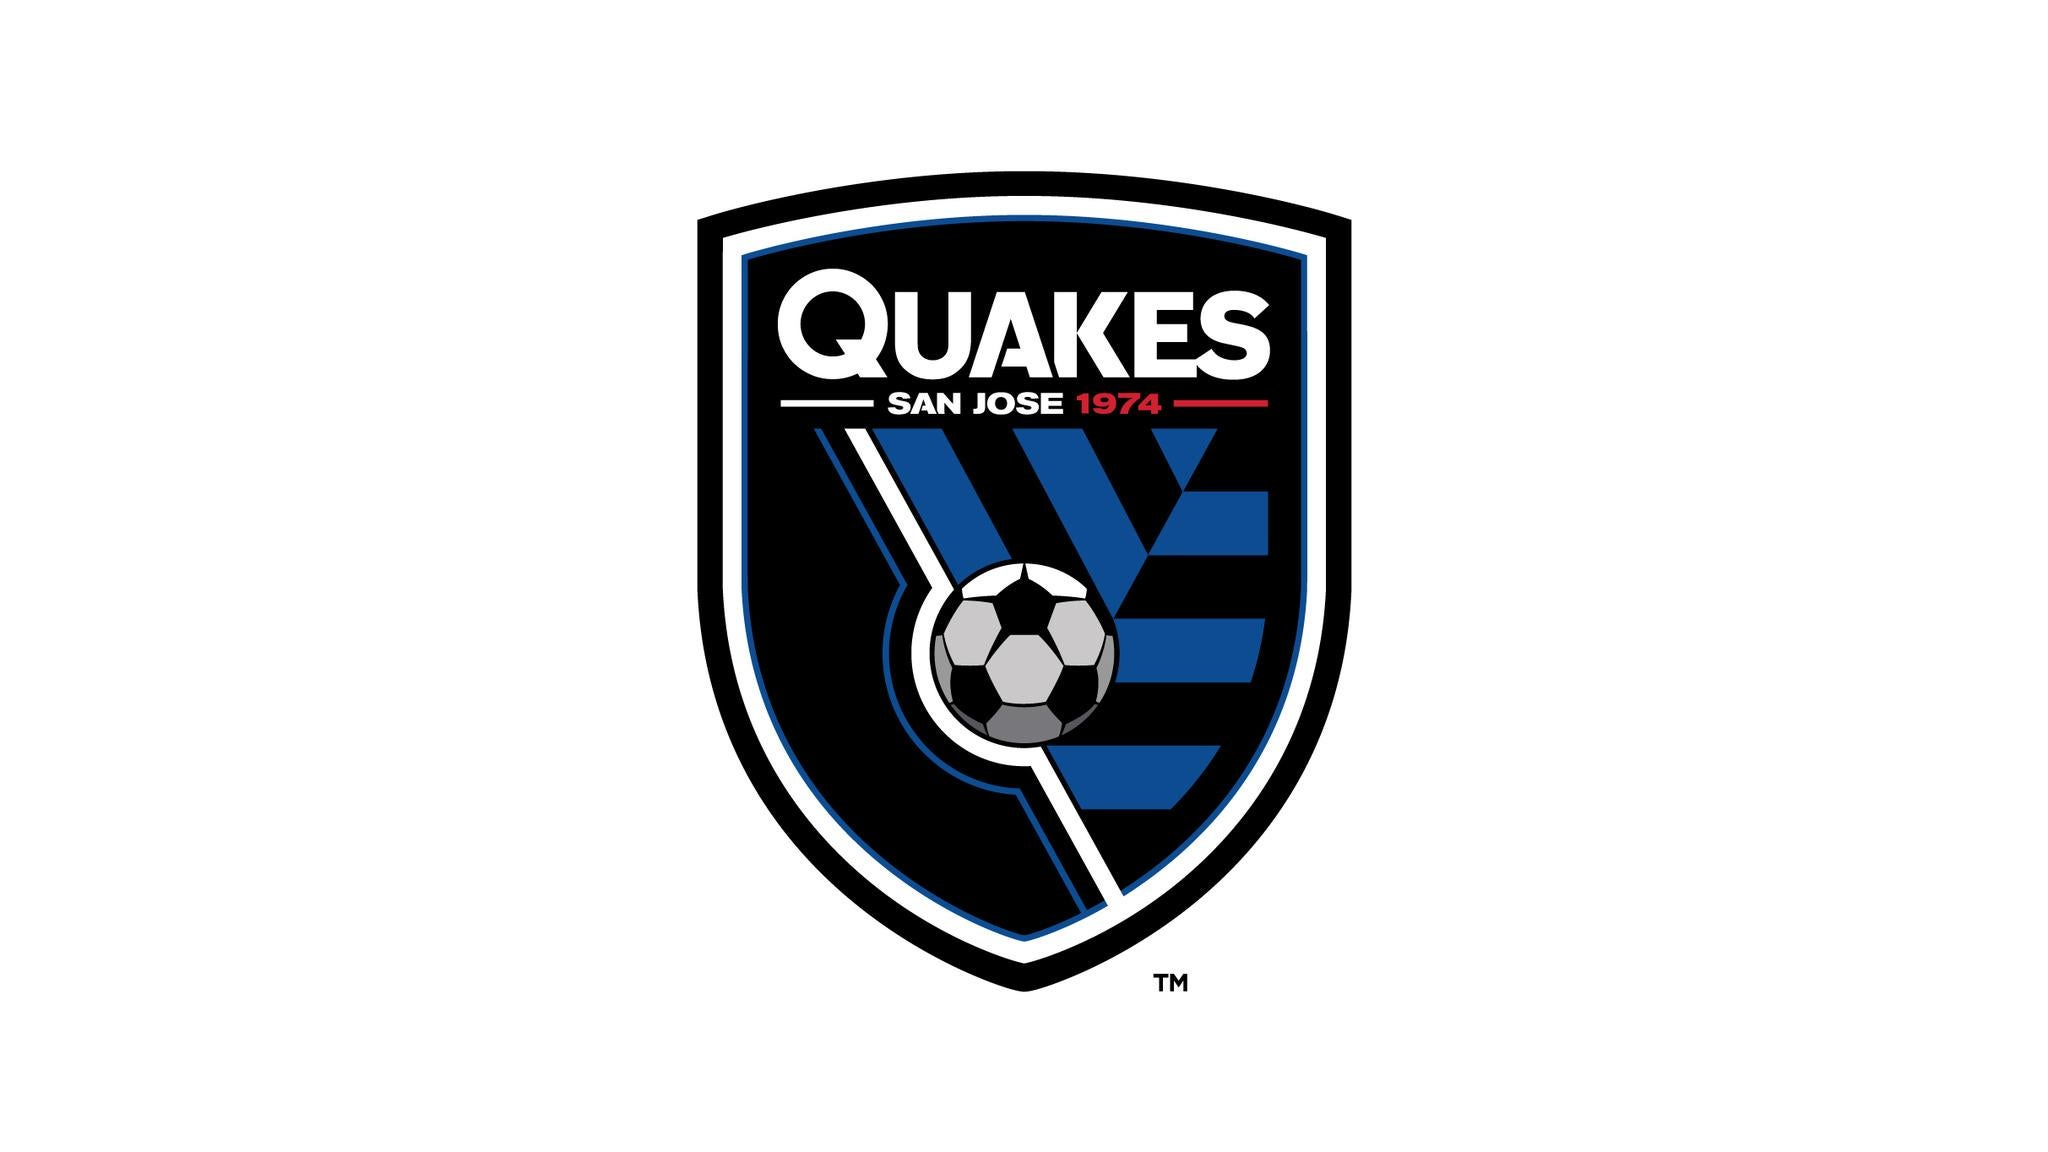 San Jose Earthquakes vs. Portland Timbers at Avaya Stadium - San Jose, CA 95110